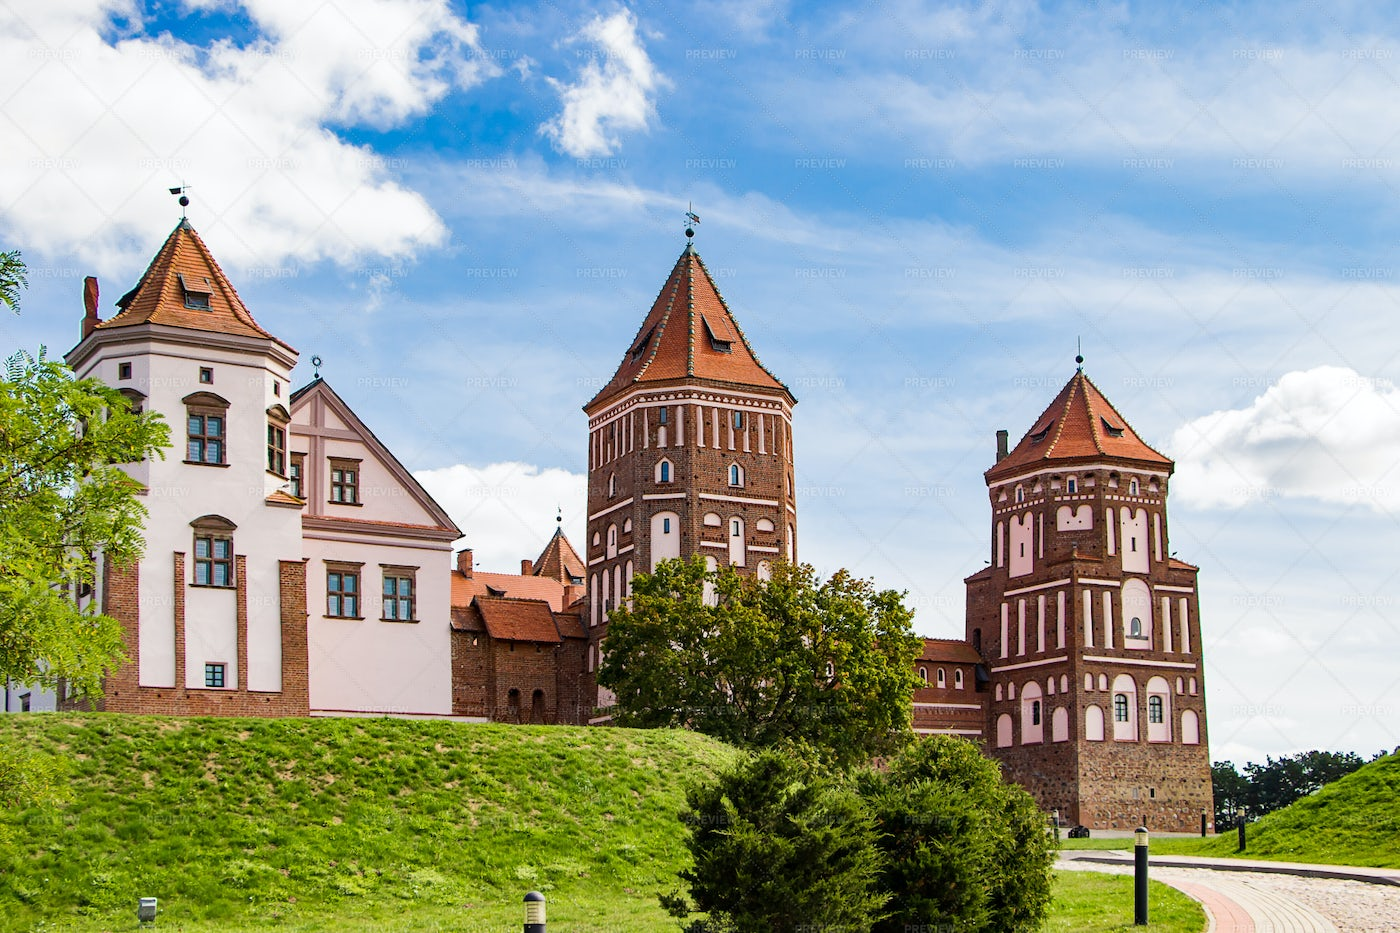 Medieval Castle During Summer: Stock Photos